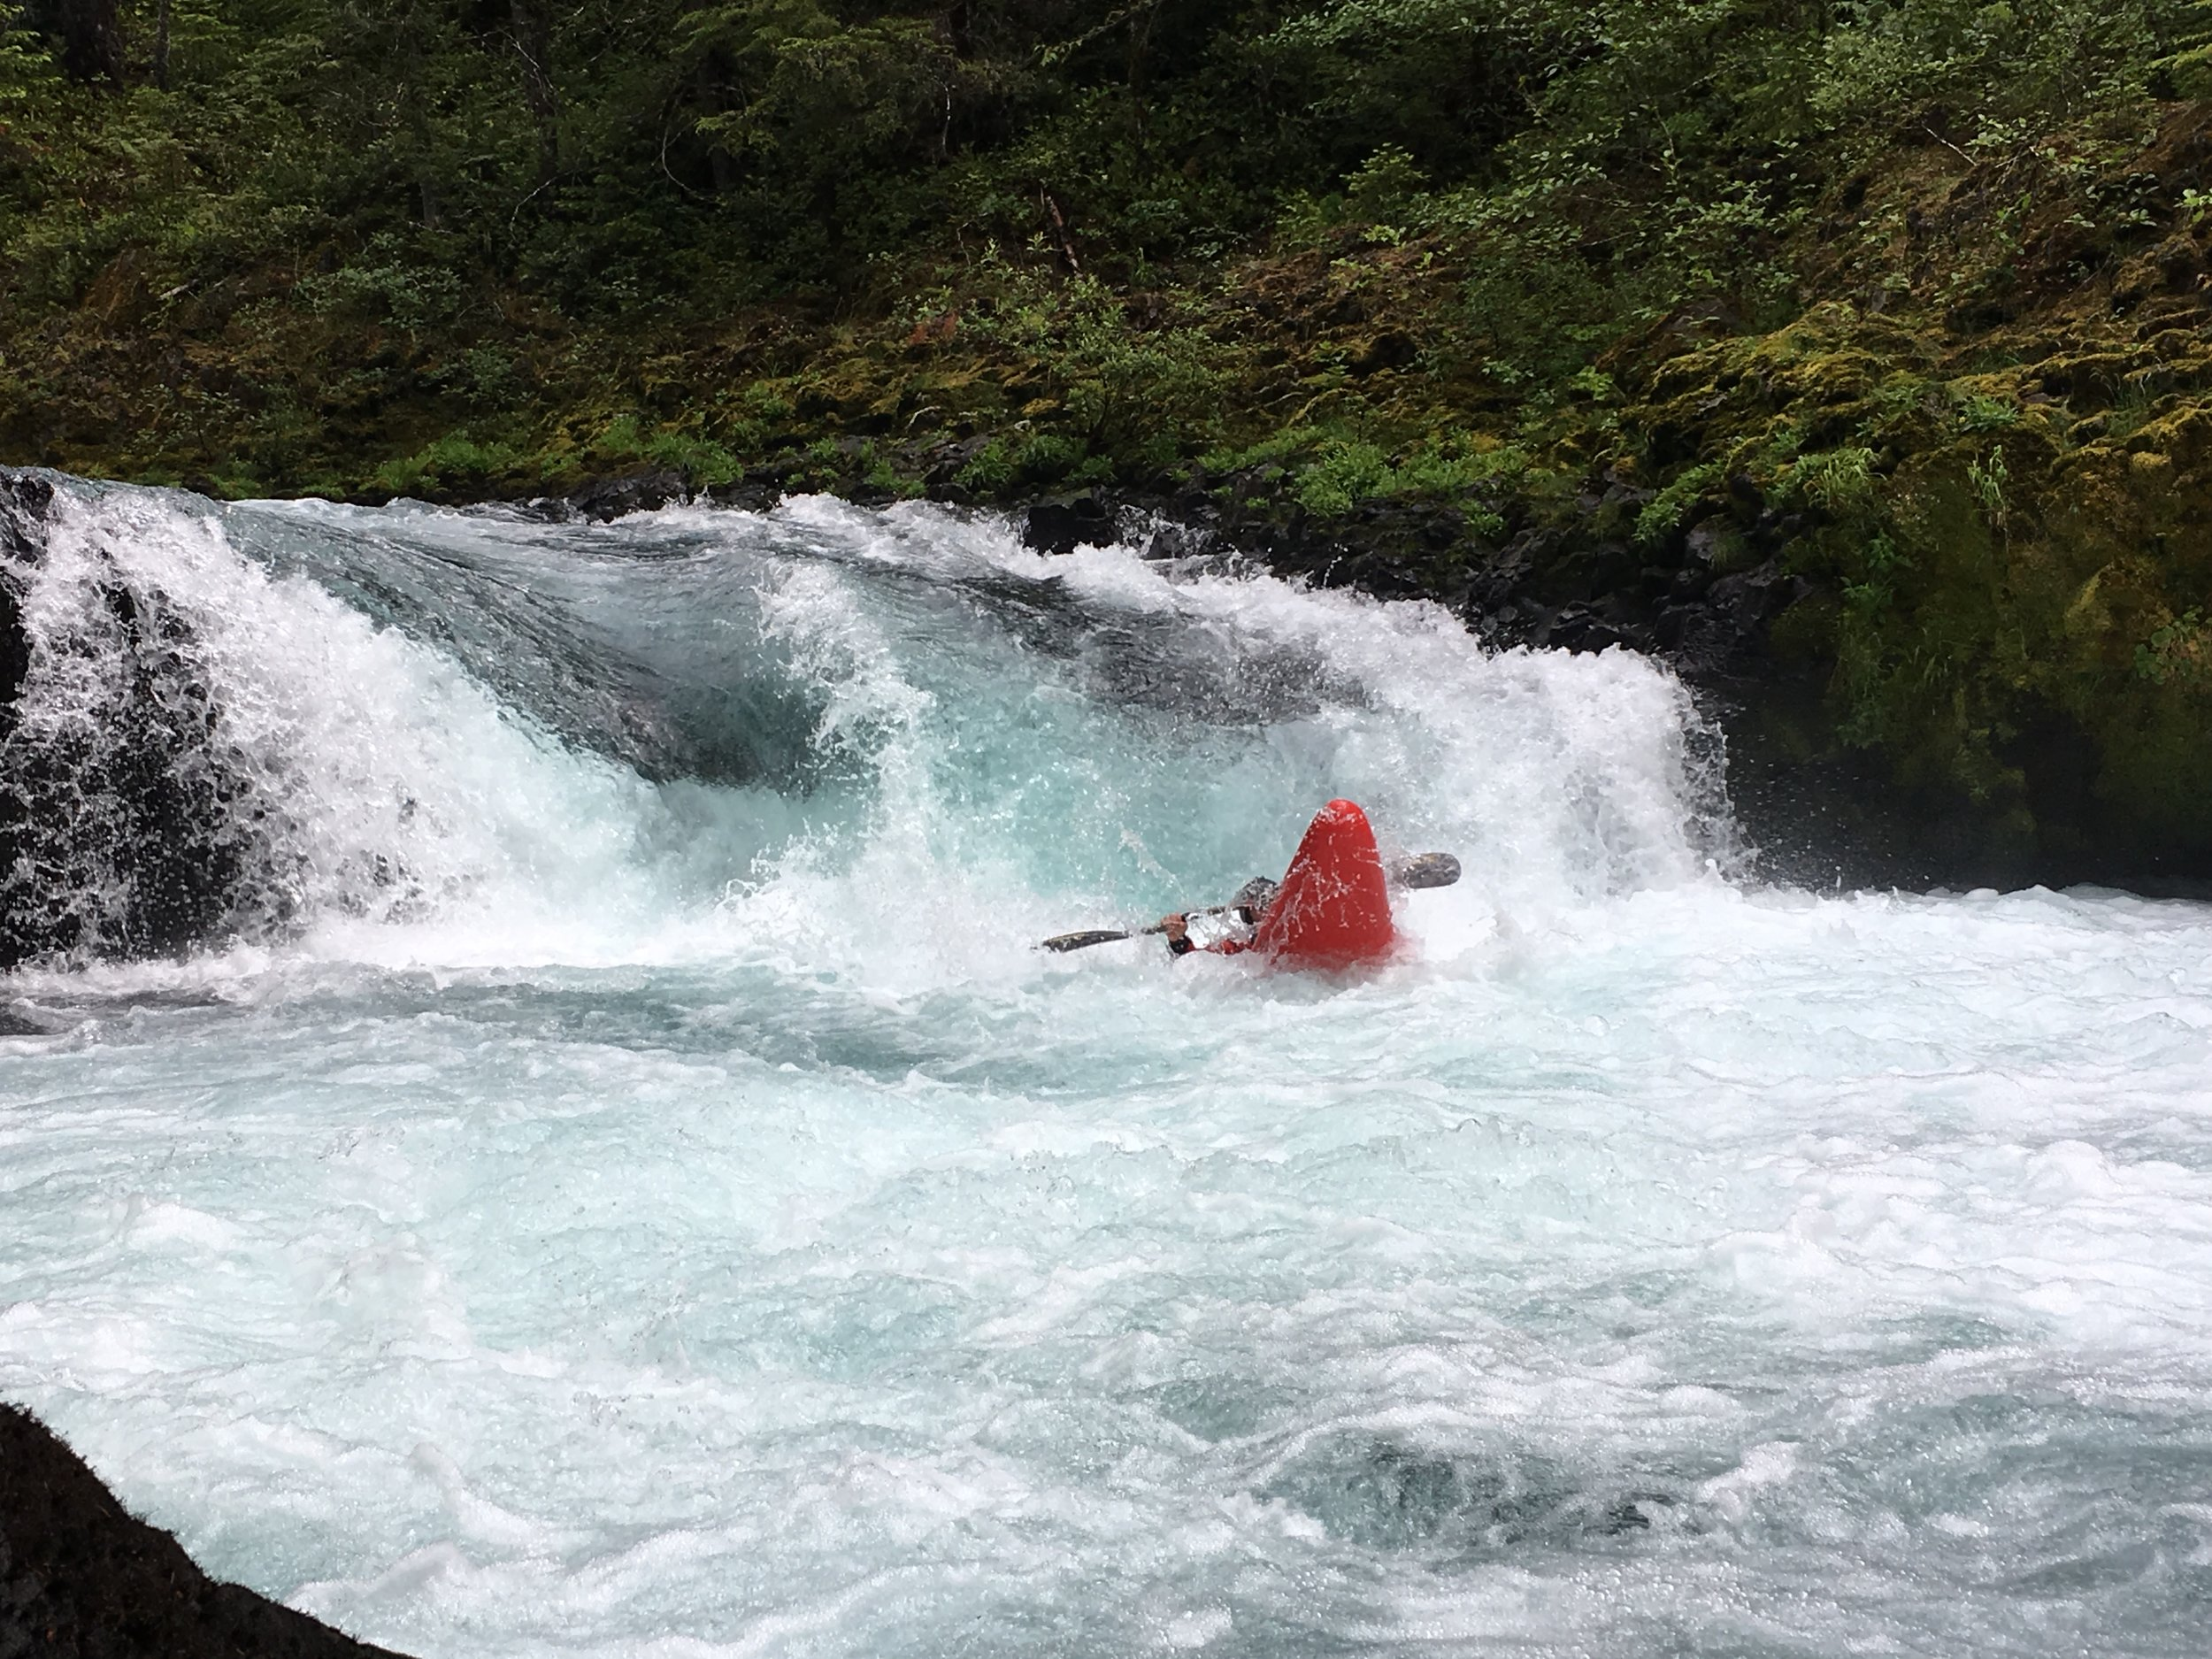 A paddler about to resurface after running Sacrilege at lower flow (Photo courtesy of Adam Edwards).